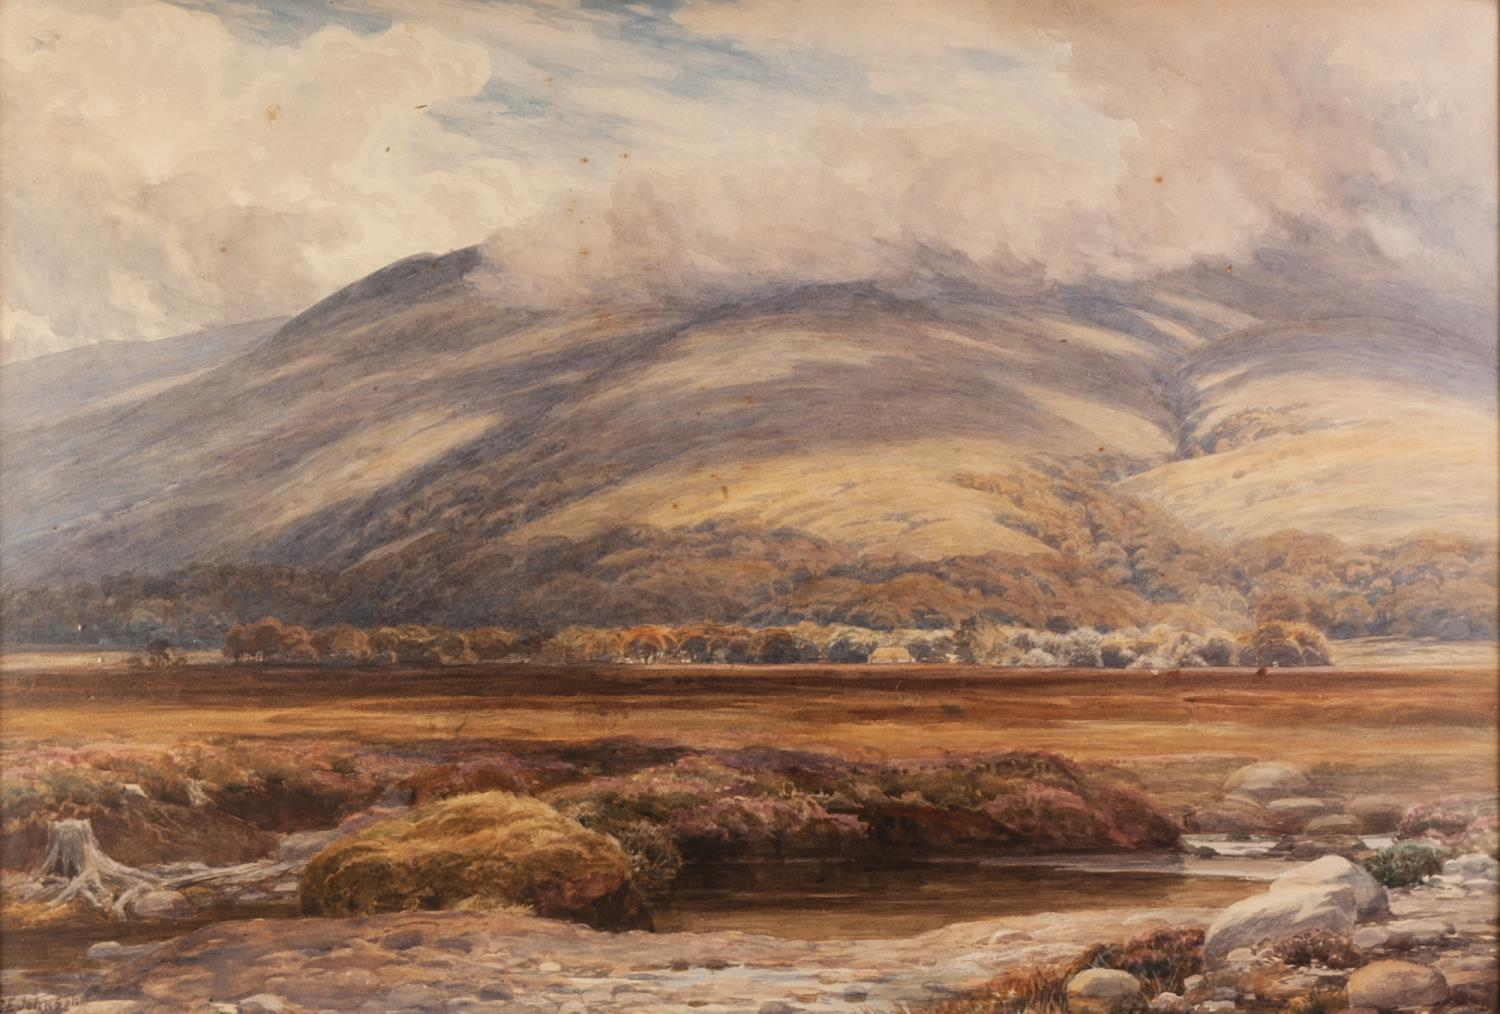 Lot 183 - CHARLES EDWARD JOHNSON (1832 - 1913) WATERCOLOUR DRAWING Mountainous landscape with river valley